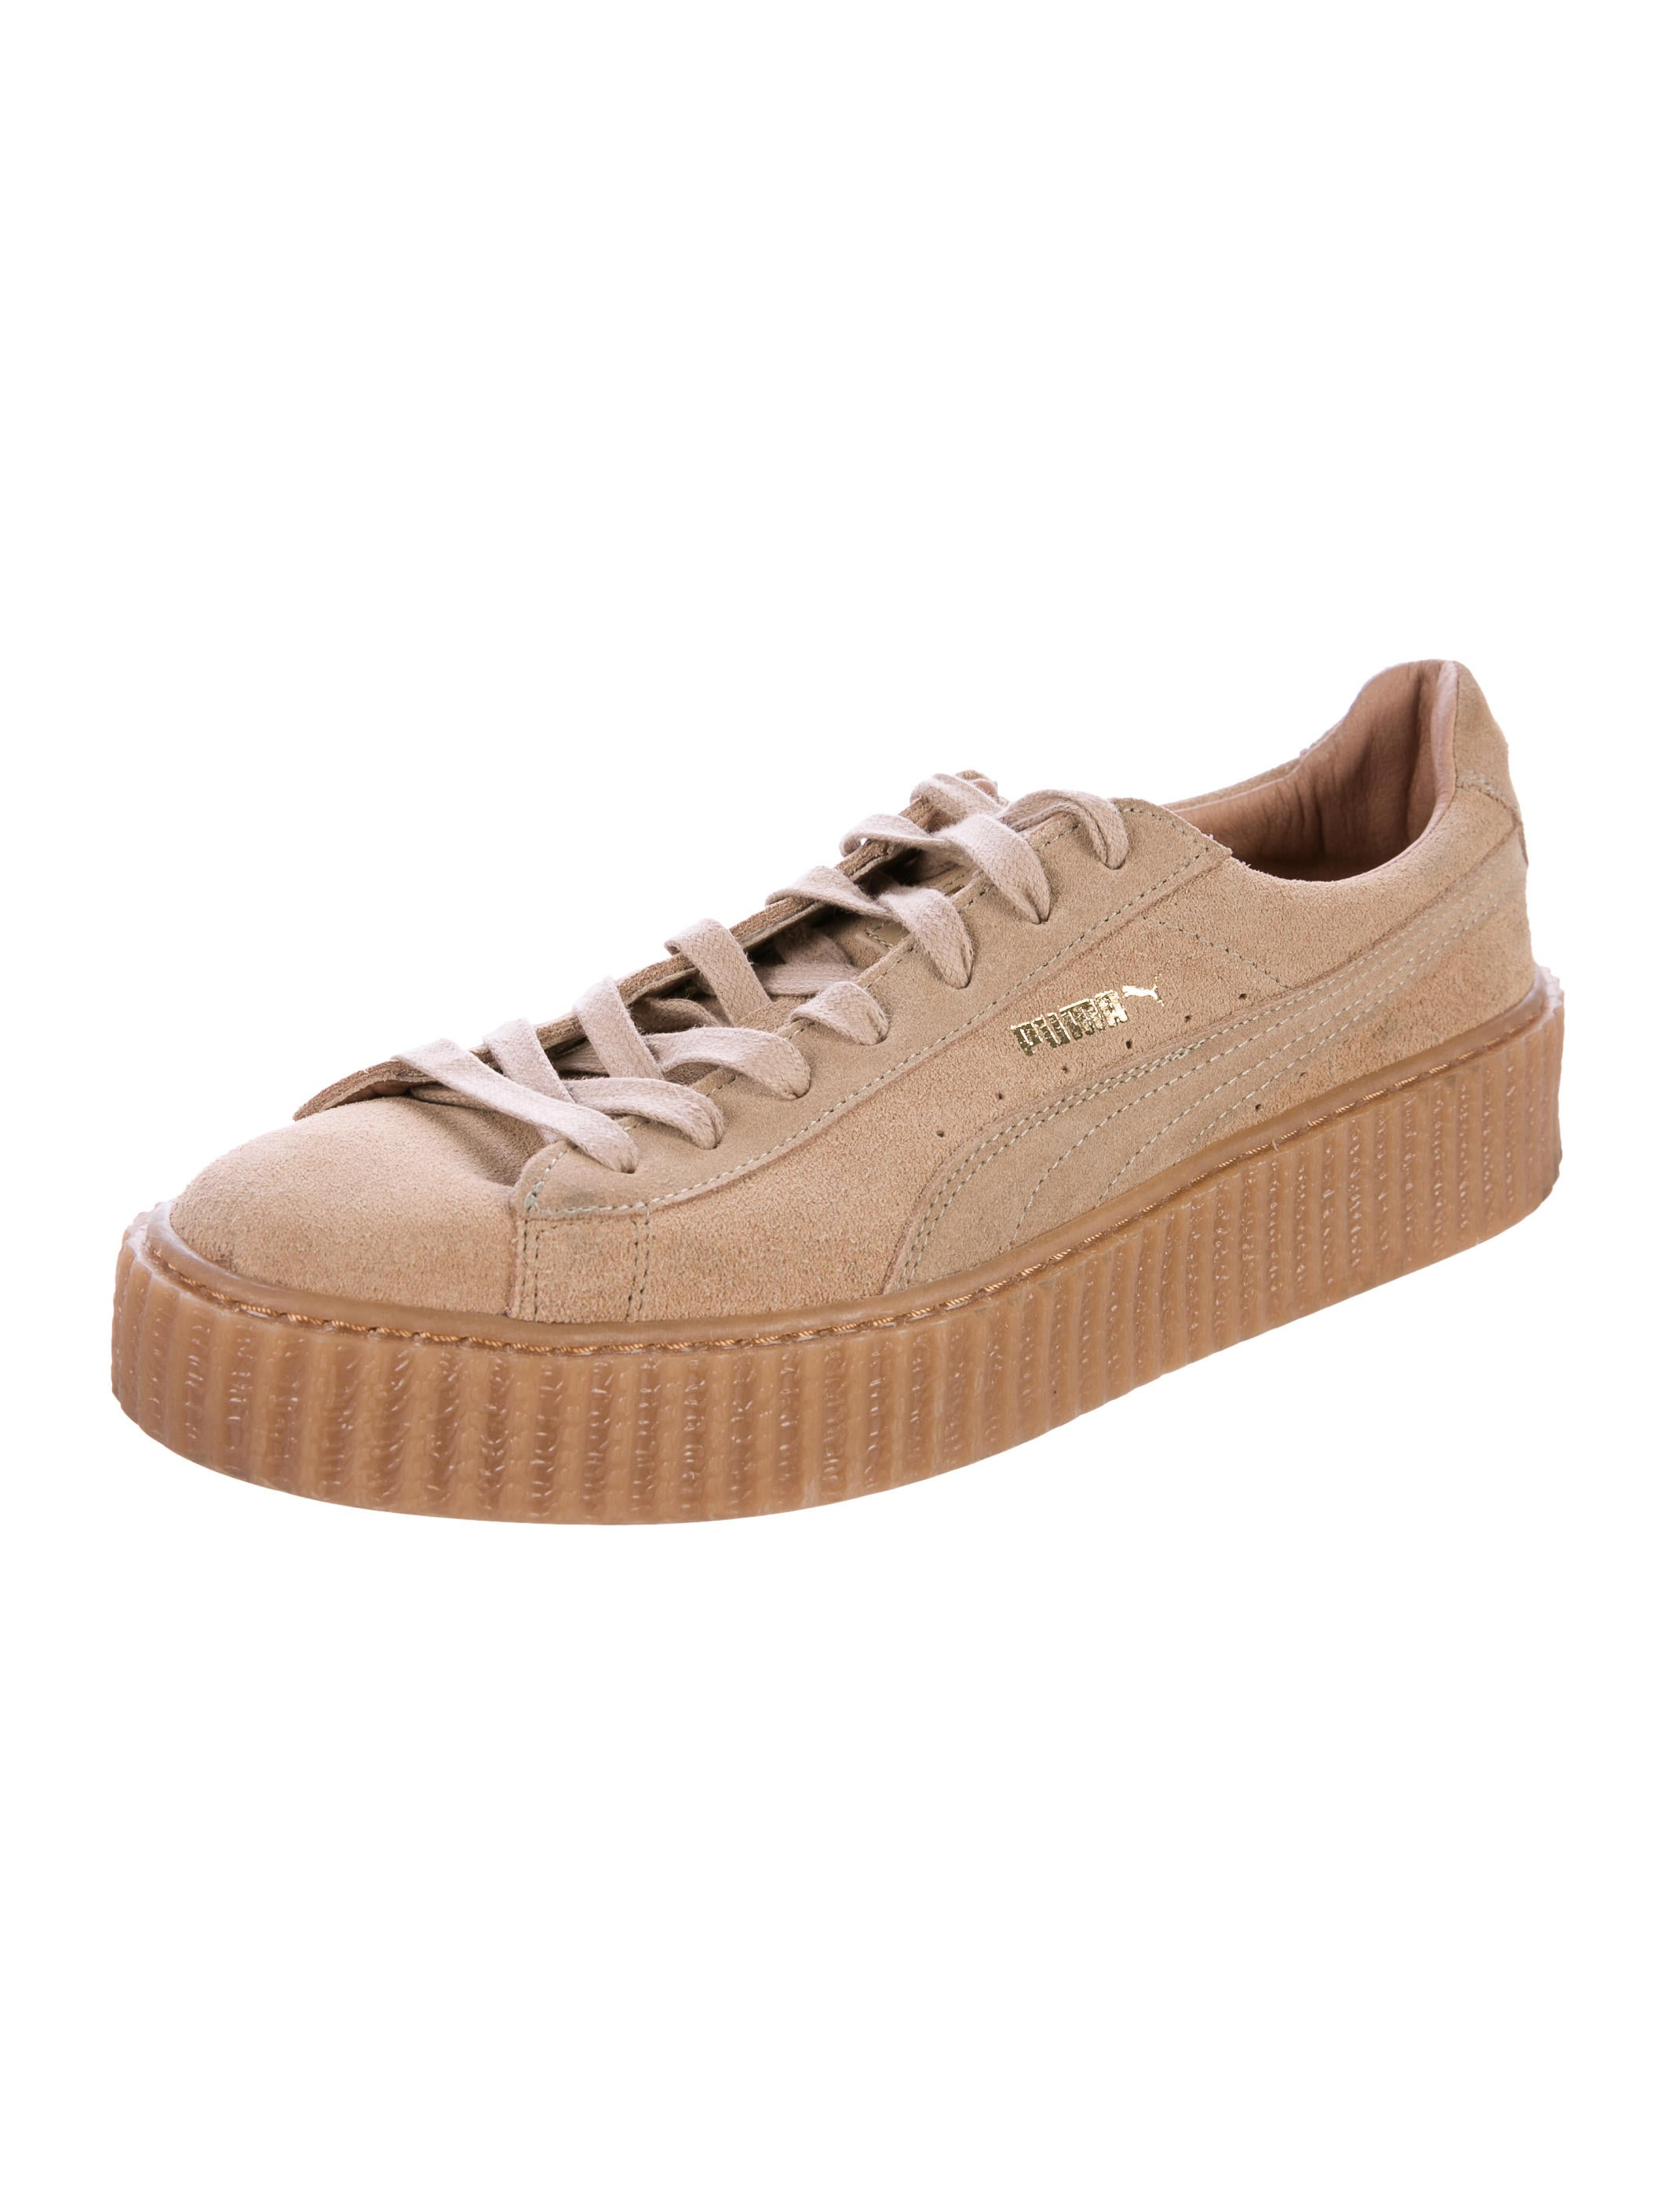 puma x fenty suede anniversary creepers shoes. Black Bedroom Furniture Sets. Home Design Ideas